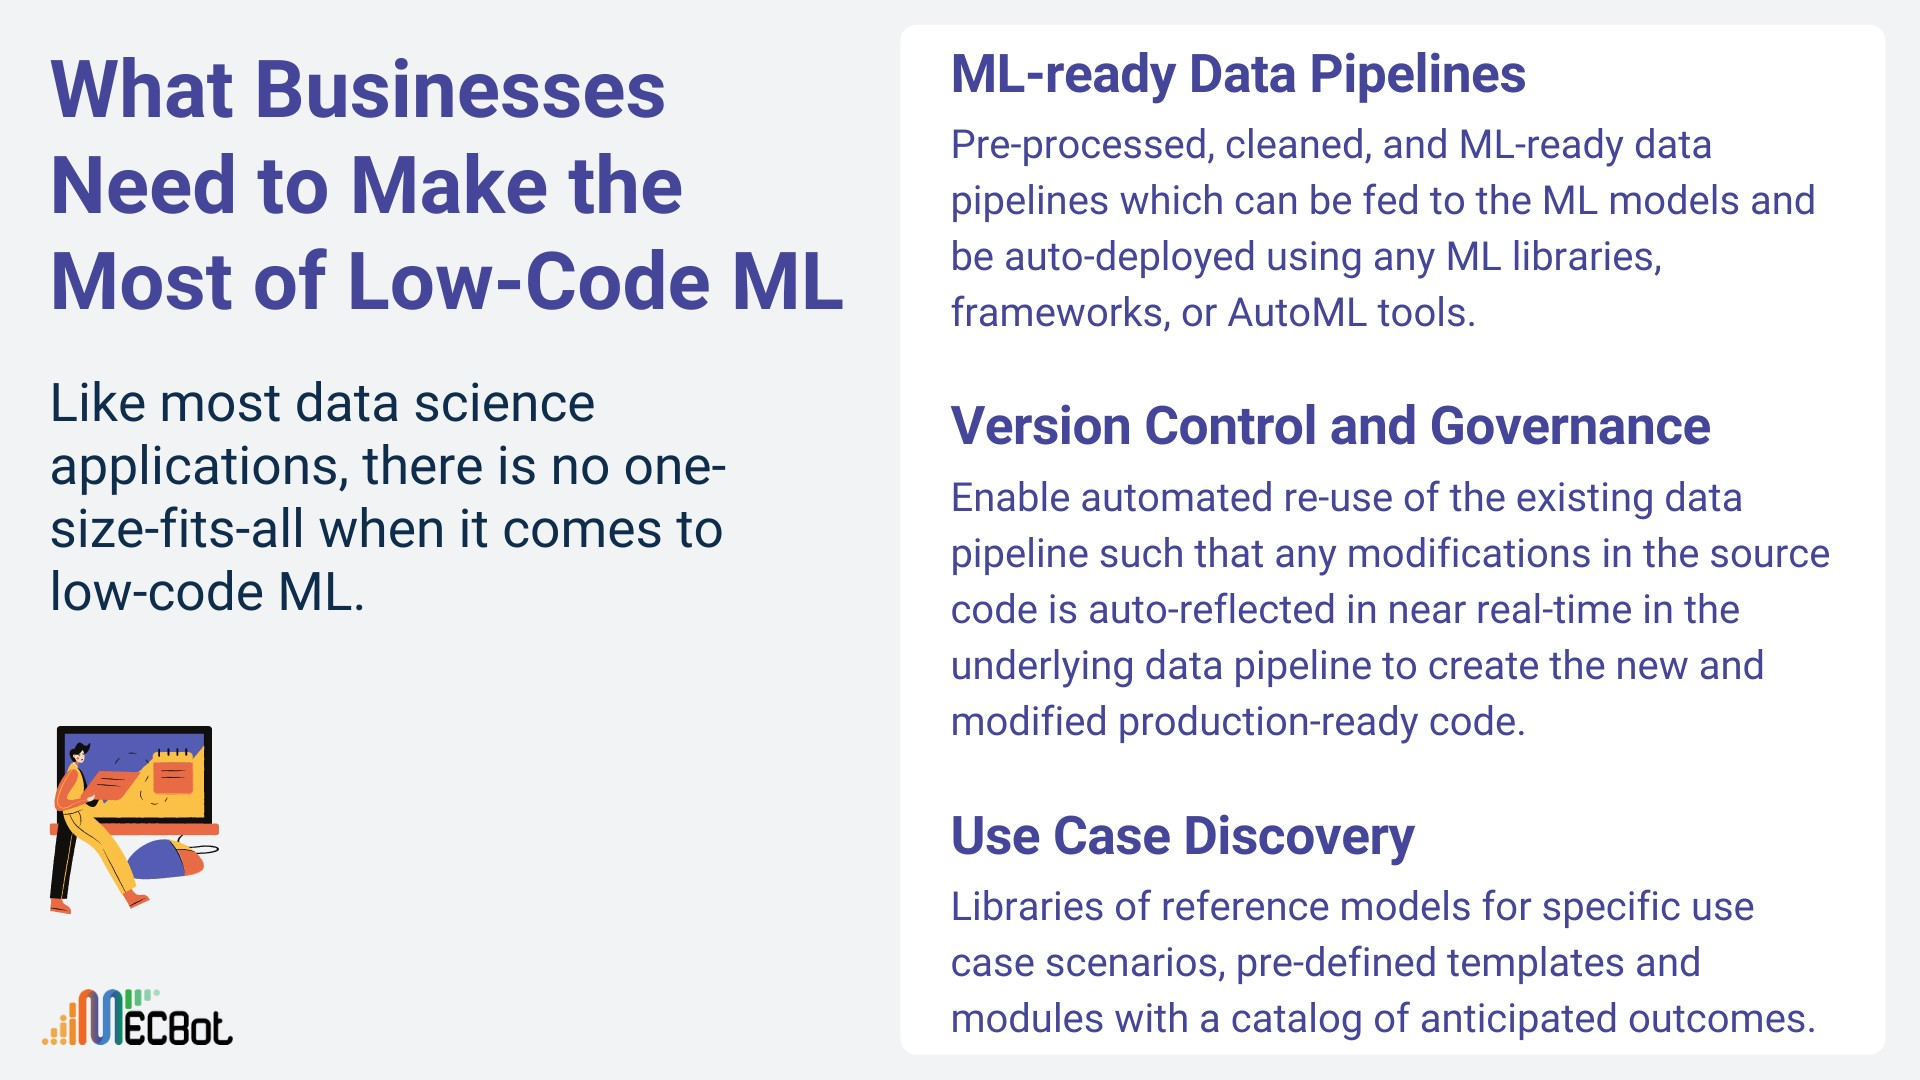 Business to Make the Most of Low Code ML